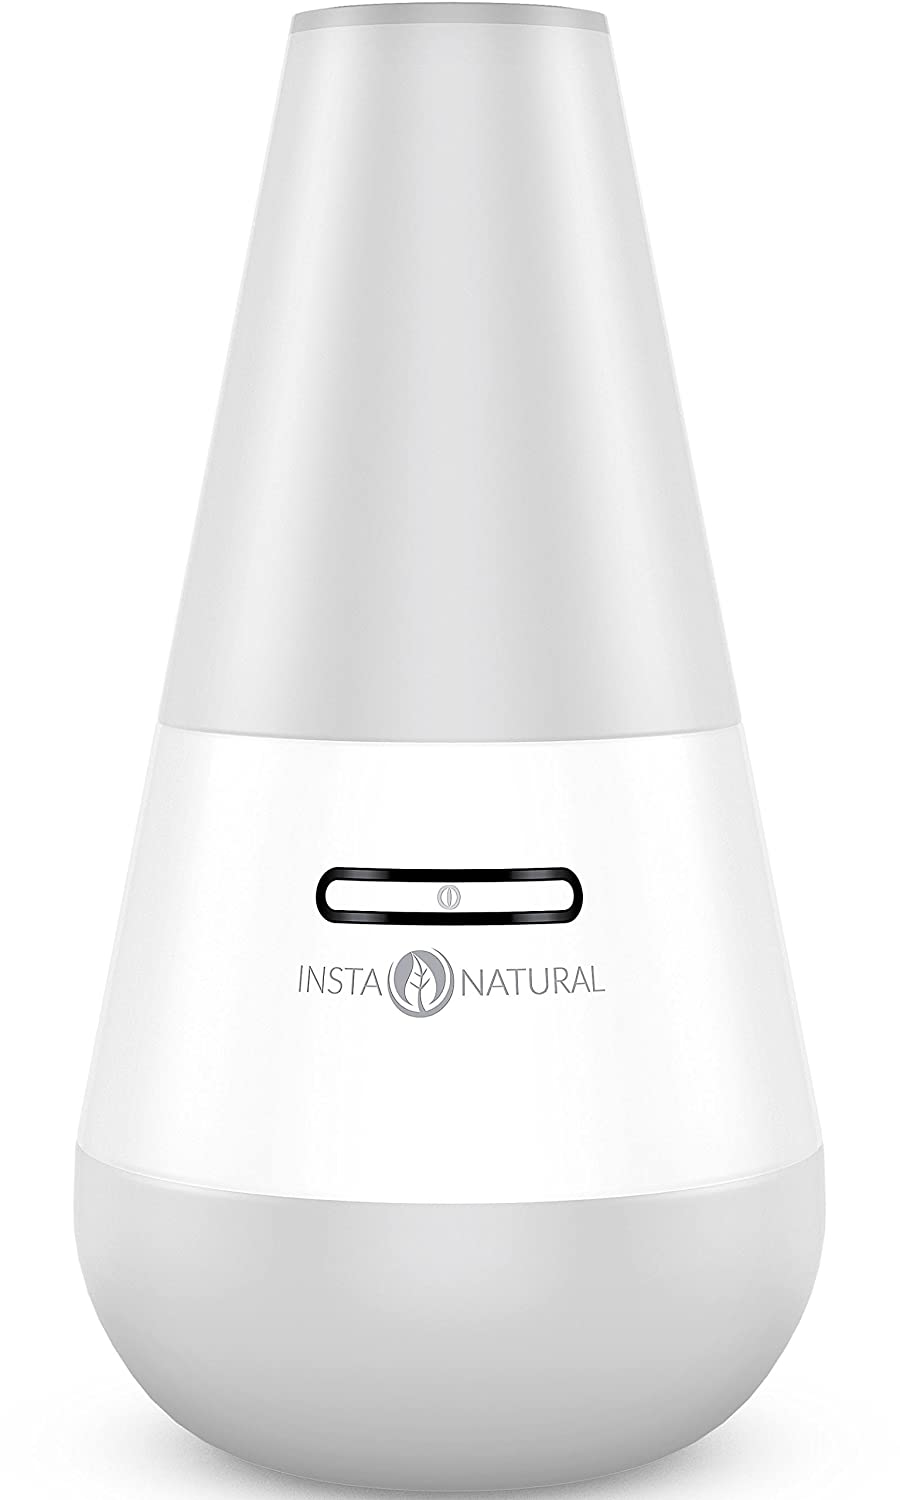 InstaNatural Essential Oil Diffuser for Aromatherapy - Ultrasonic Mist Humidifier and Ionizer for Any Living Space